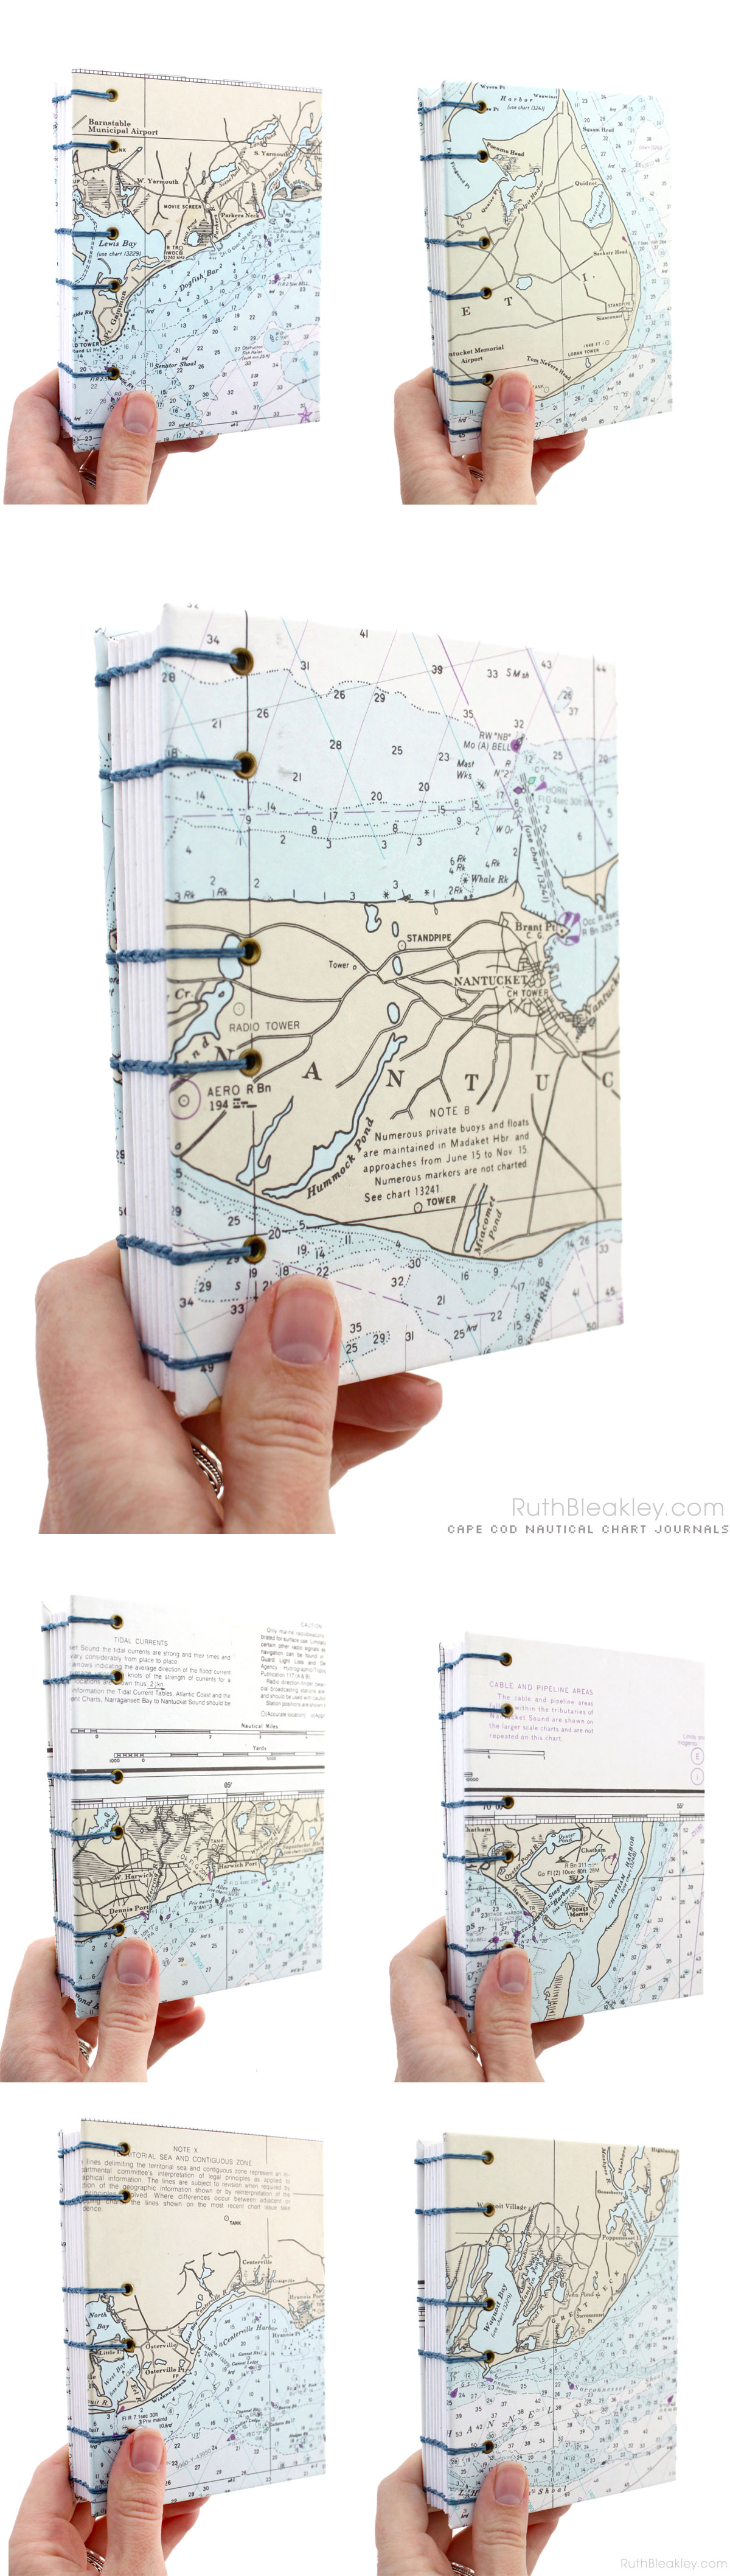 Cape Cod Nautical Chart Journals made by Ruth Bleakley - Unlined Coptic Journals